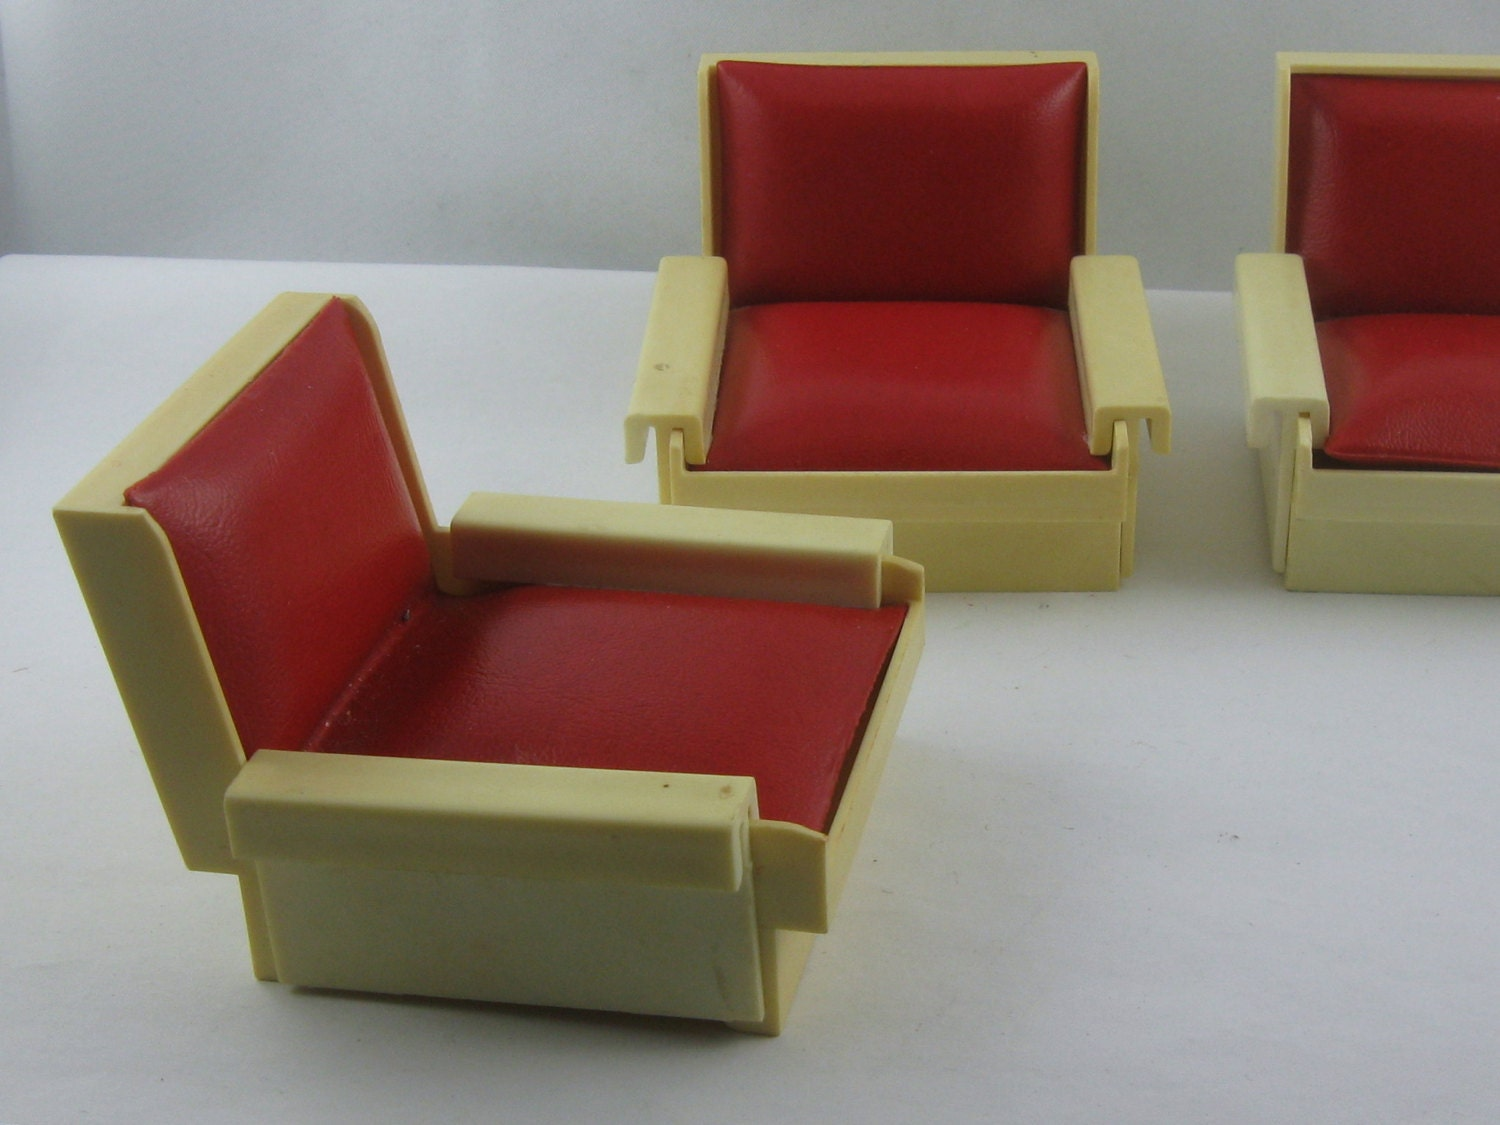 10% OFF Dollhouse furniture from the 60s 70s made of